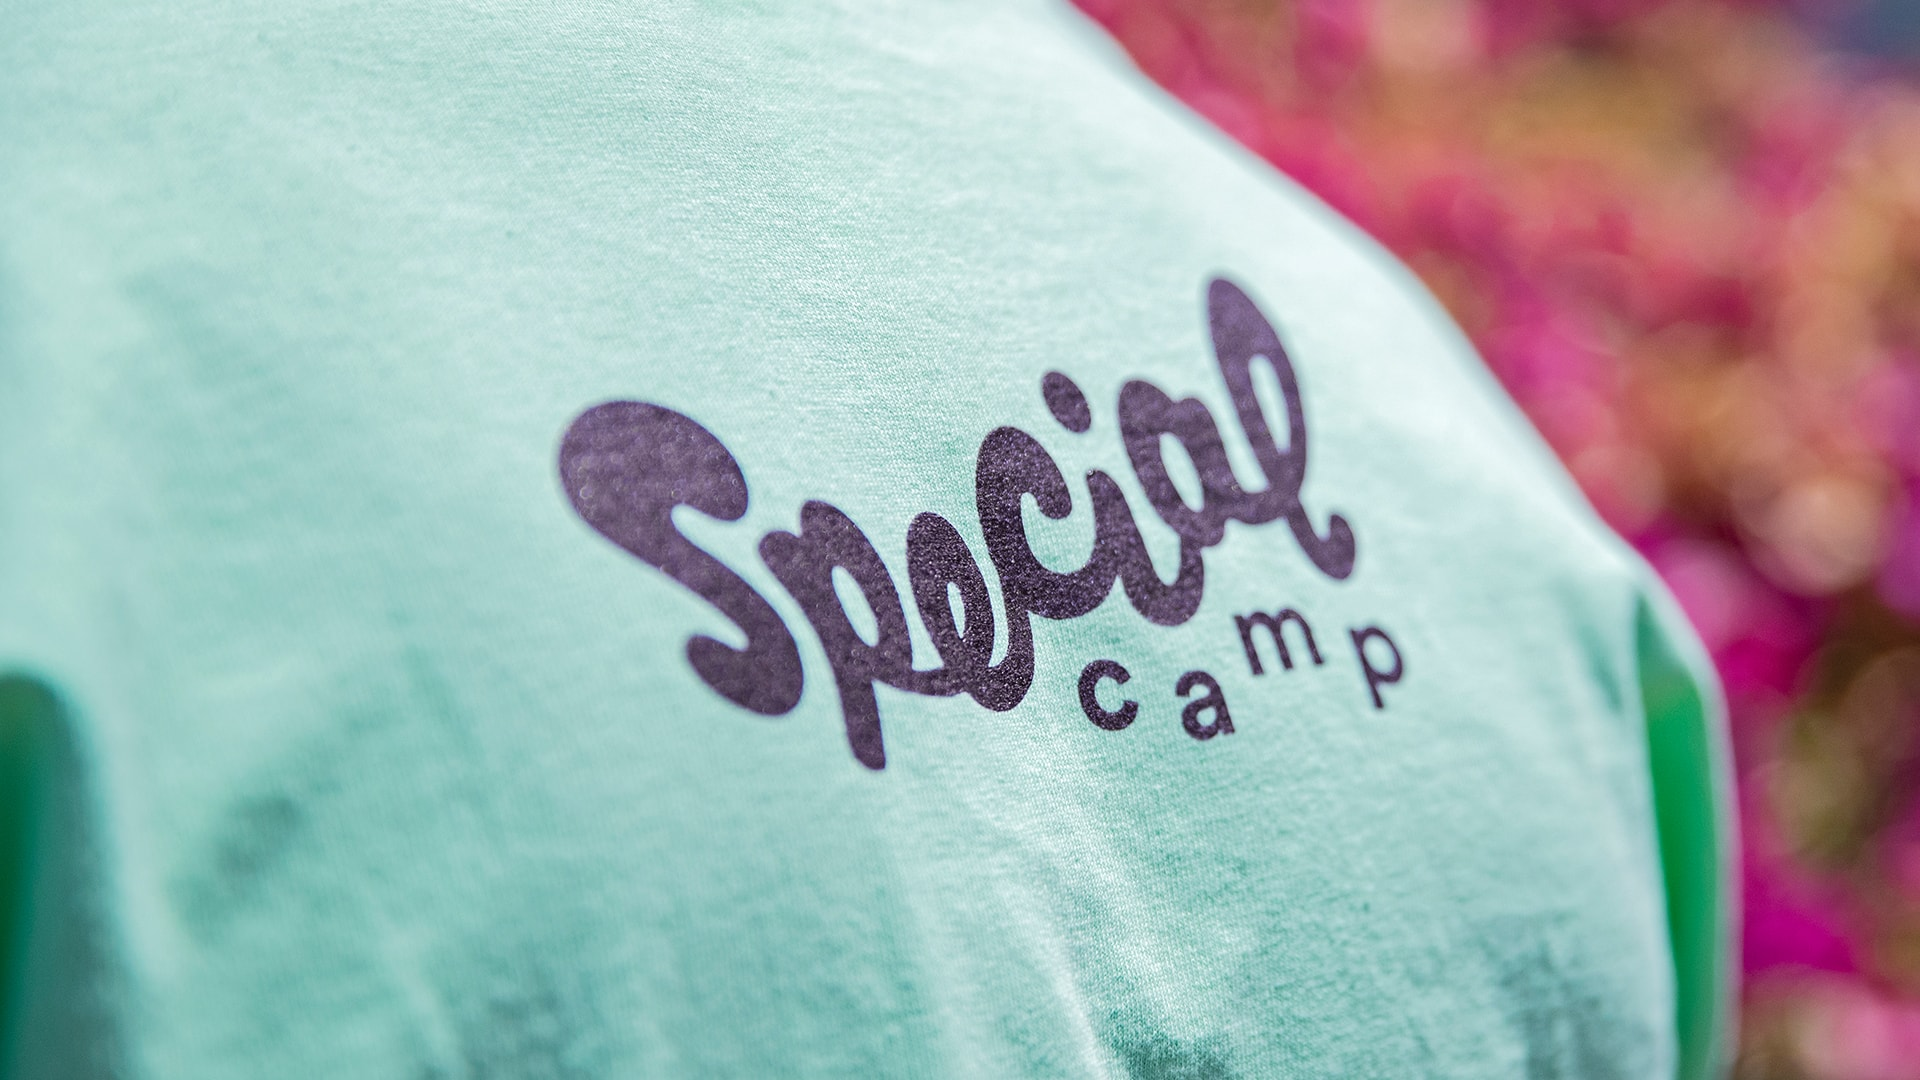 Special camp releases rebrand